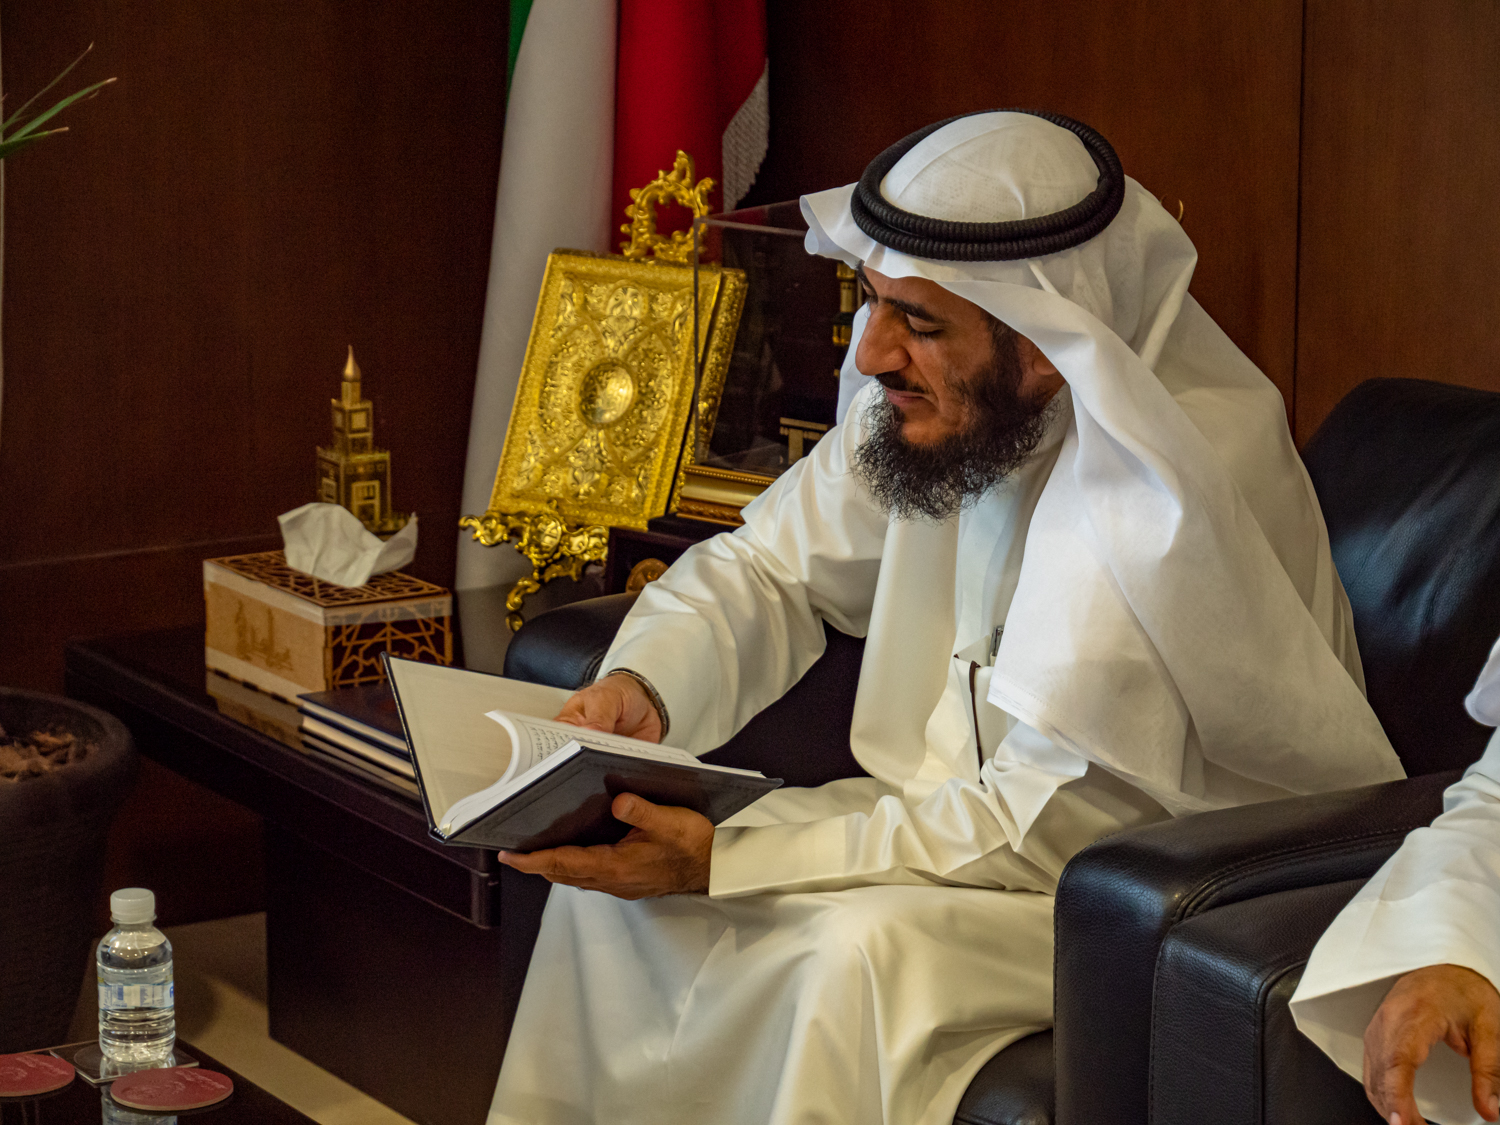 Mr. Fareed Emadi, secretary general of the Supreme Commission for the Promotion of Moderation in the Ministry of Awqaf, leafs through a Book of Mormon given to him by Elder Quentin L. Cook in Kuwait City on June 10, 2019.